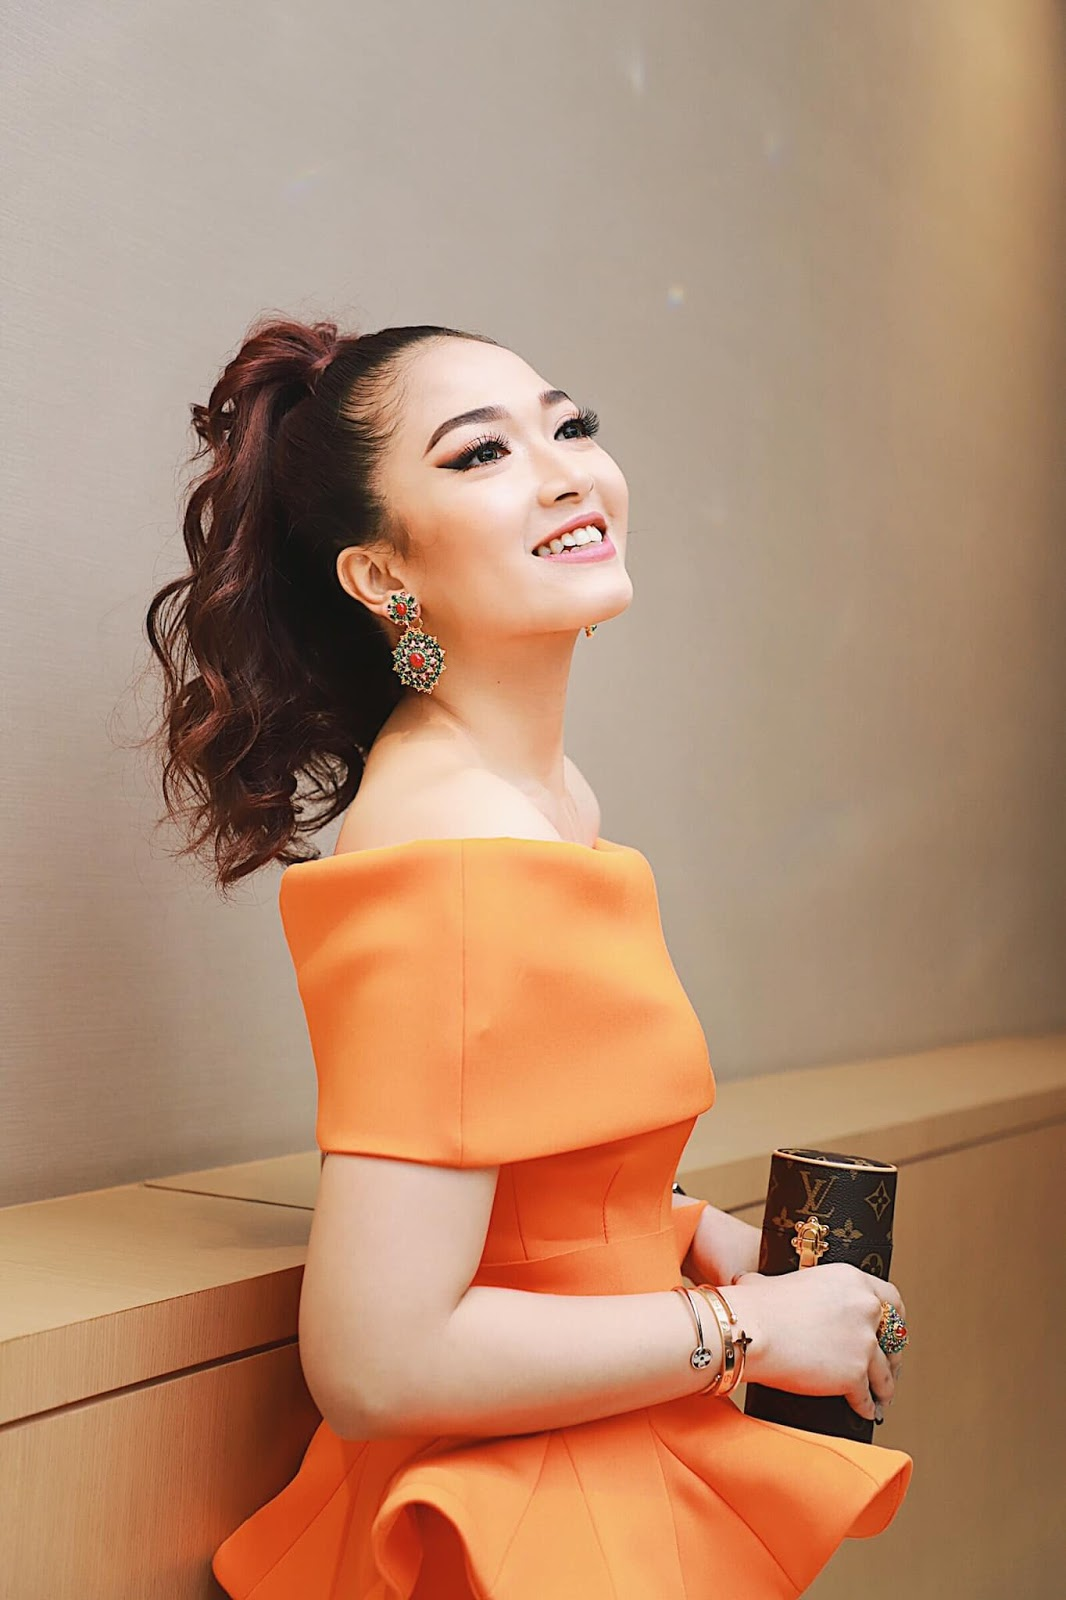 San Yati Moe Myint In Orange Outfit